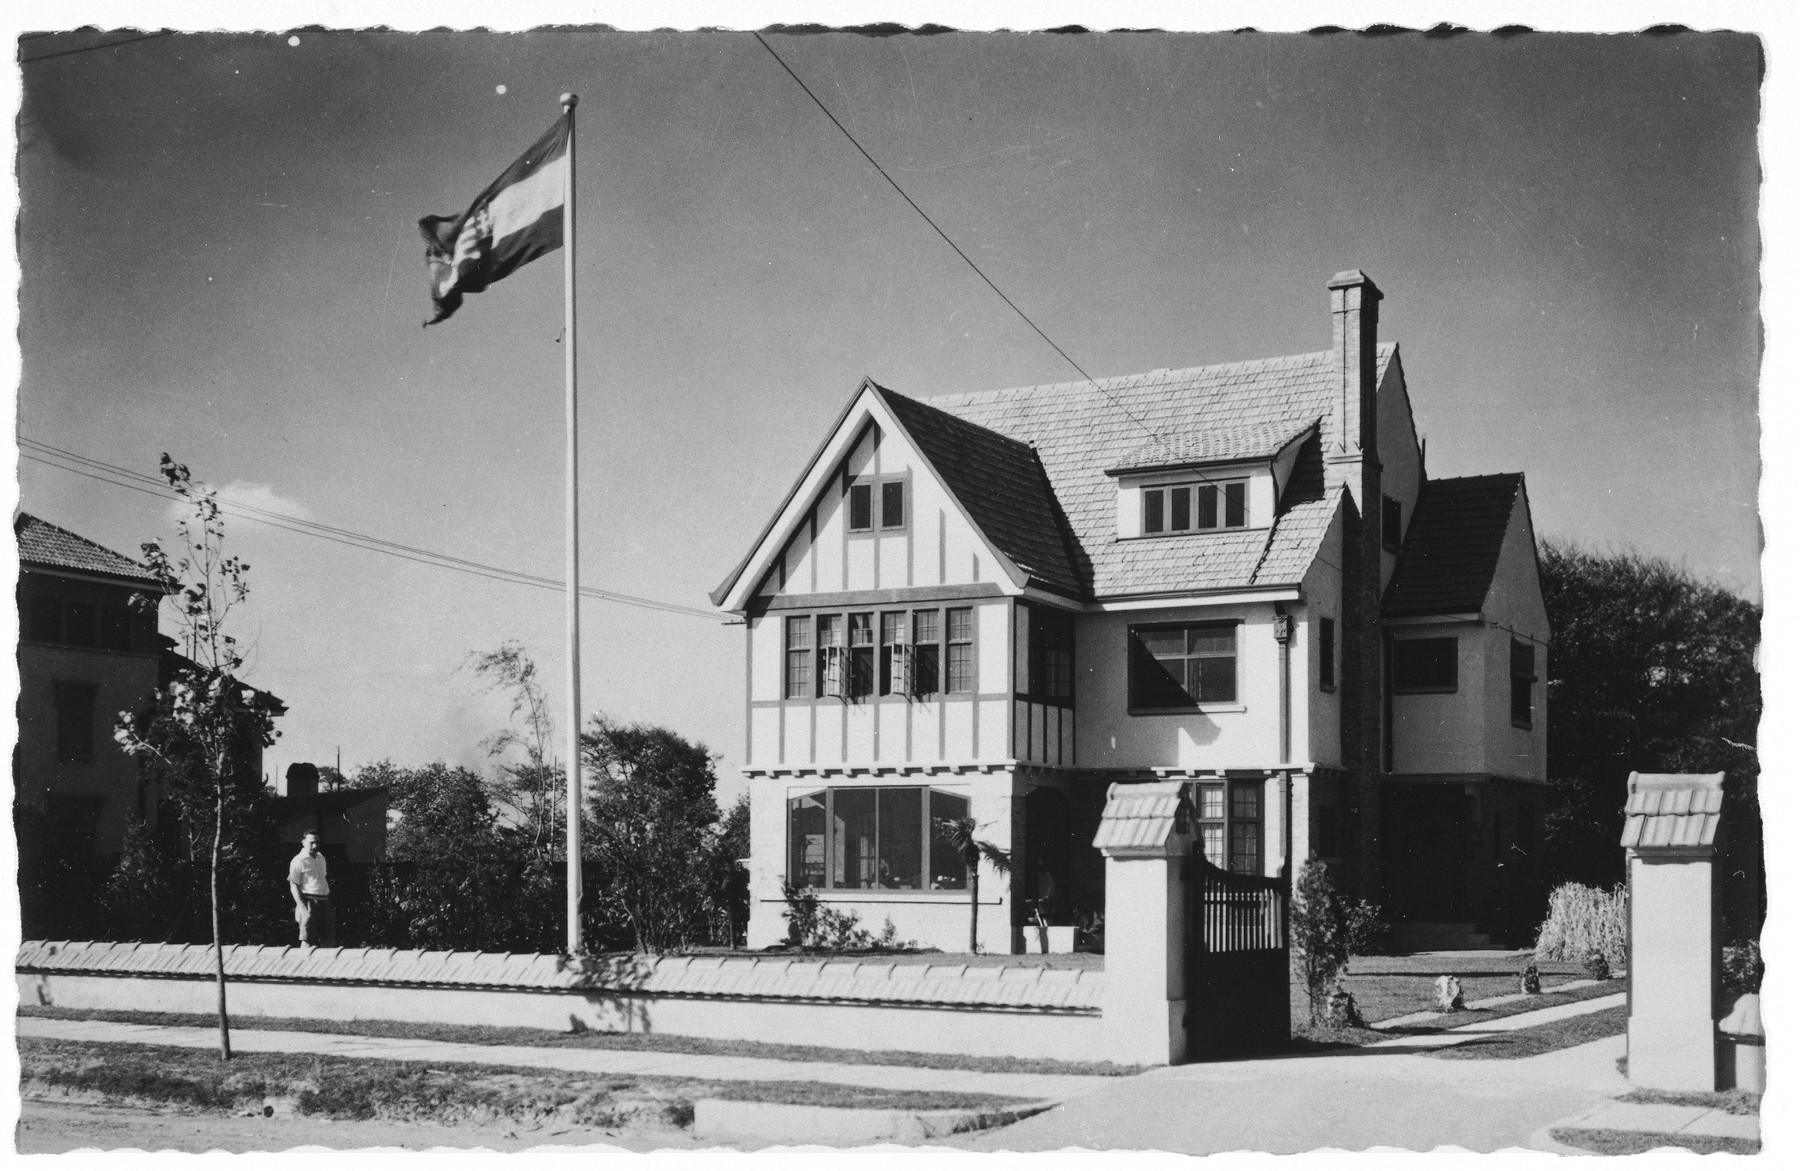 A Hungarian flag flies in front of the residence of the Komor family at 92 Amherst Road in Shanghai.  Designed by Hungarian architect Wladislaus Hudec, the Komor home was built in 1929.